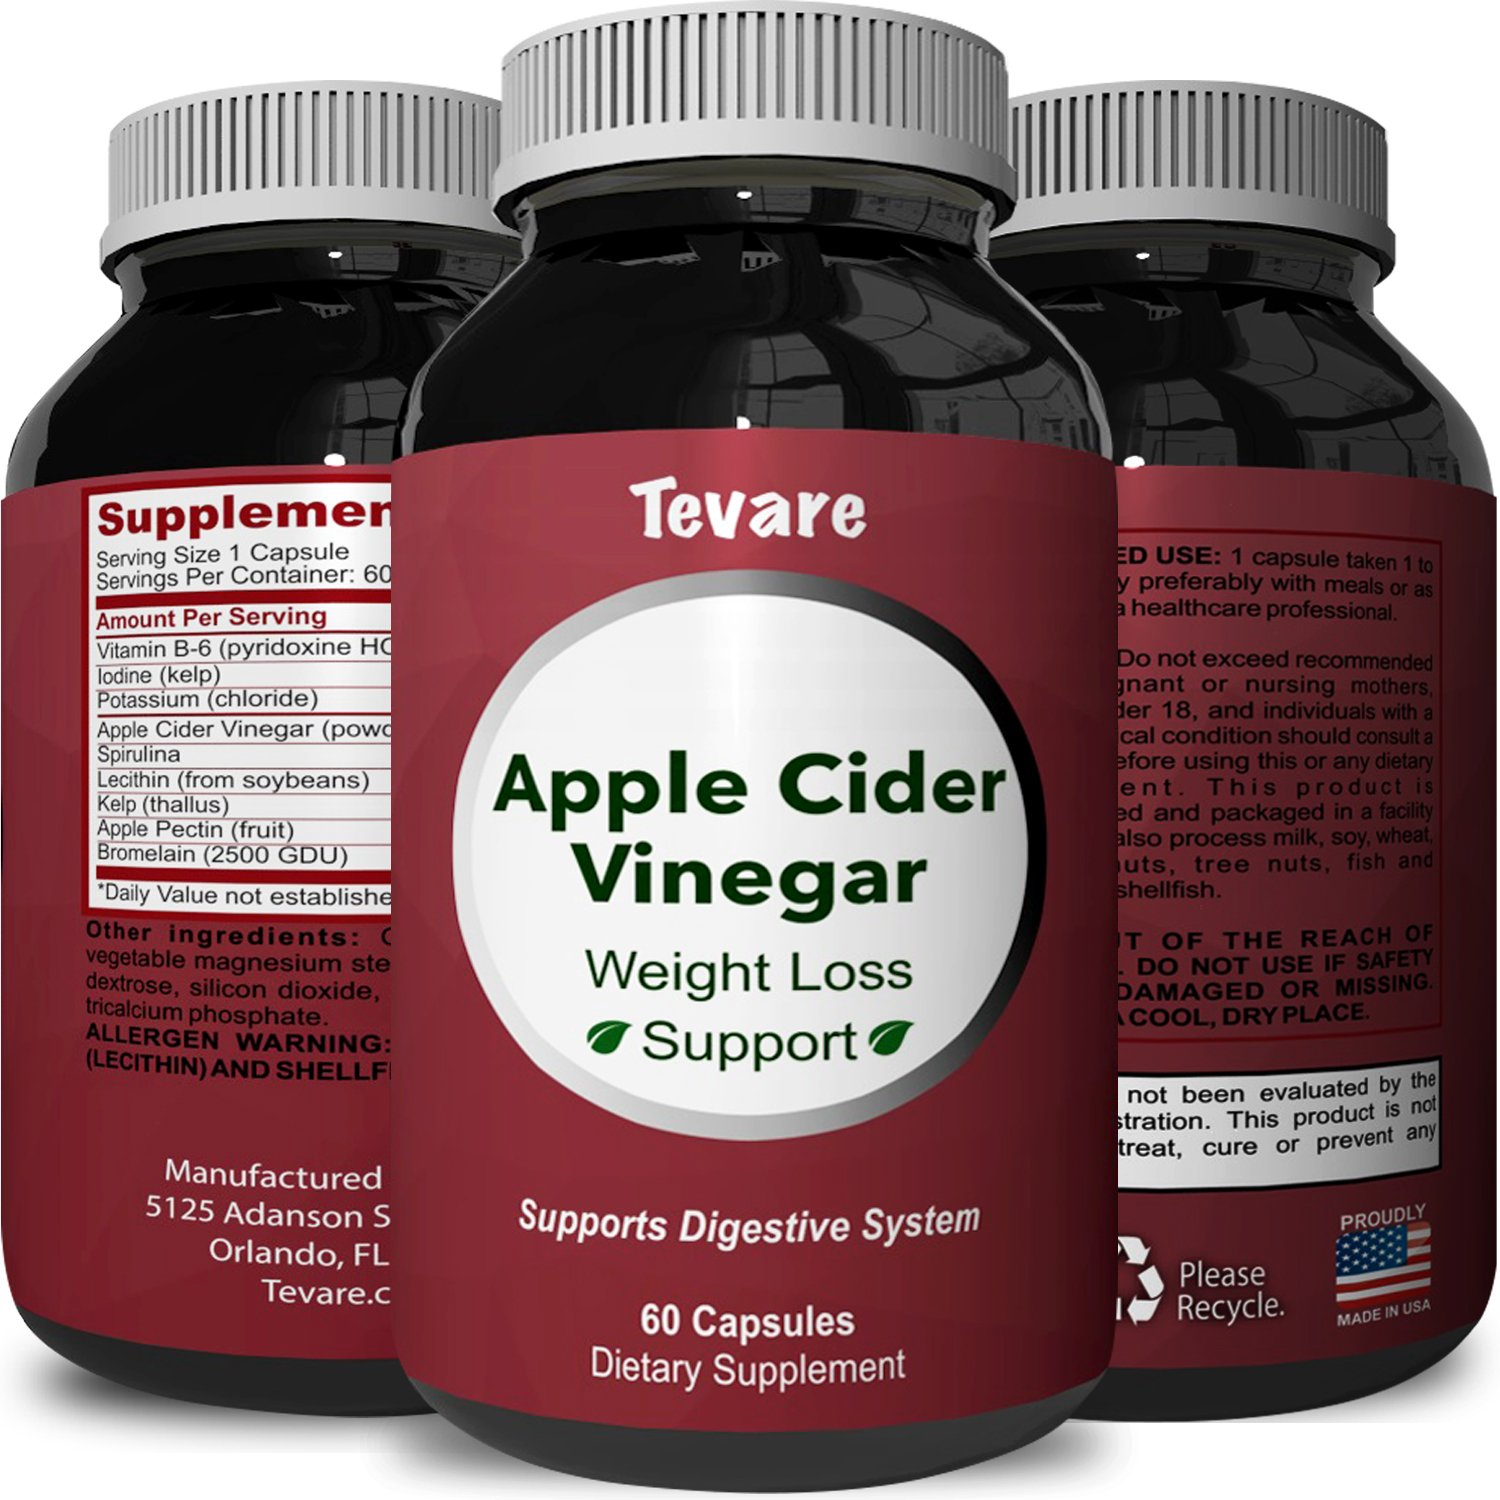 Best Apple Cider Vinegar Capsules - Pure Natural Weight Loss Supplement - Detox & Digestion Support - Boosts Metabolism + Reduces Appetite - Apple Cider Vinegar Pills for Men & Women - By Tevare